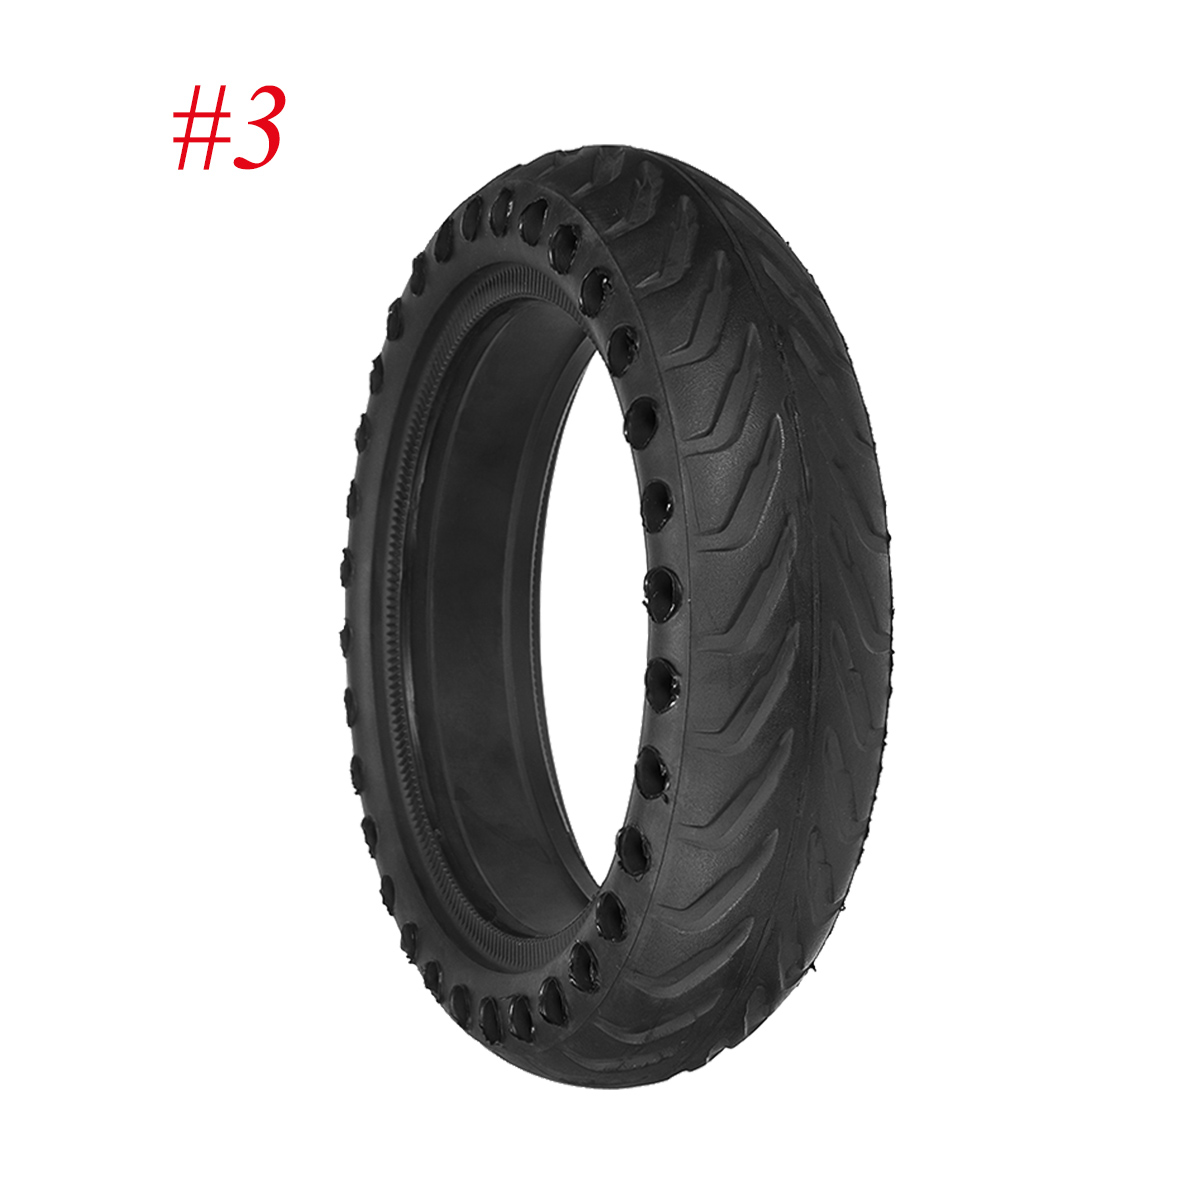 Wheel Tyre Tube Accessories Spare Parts For Xiaomi Mijia